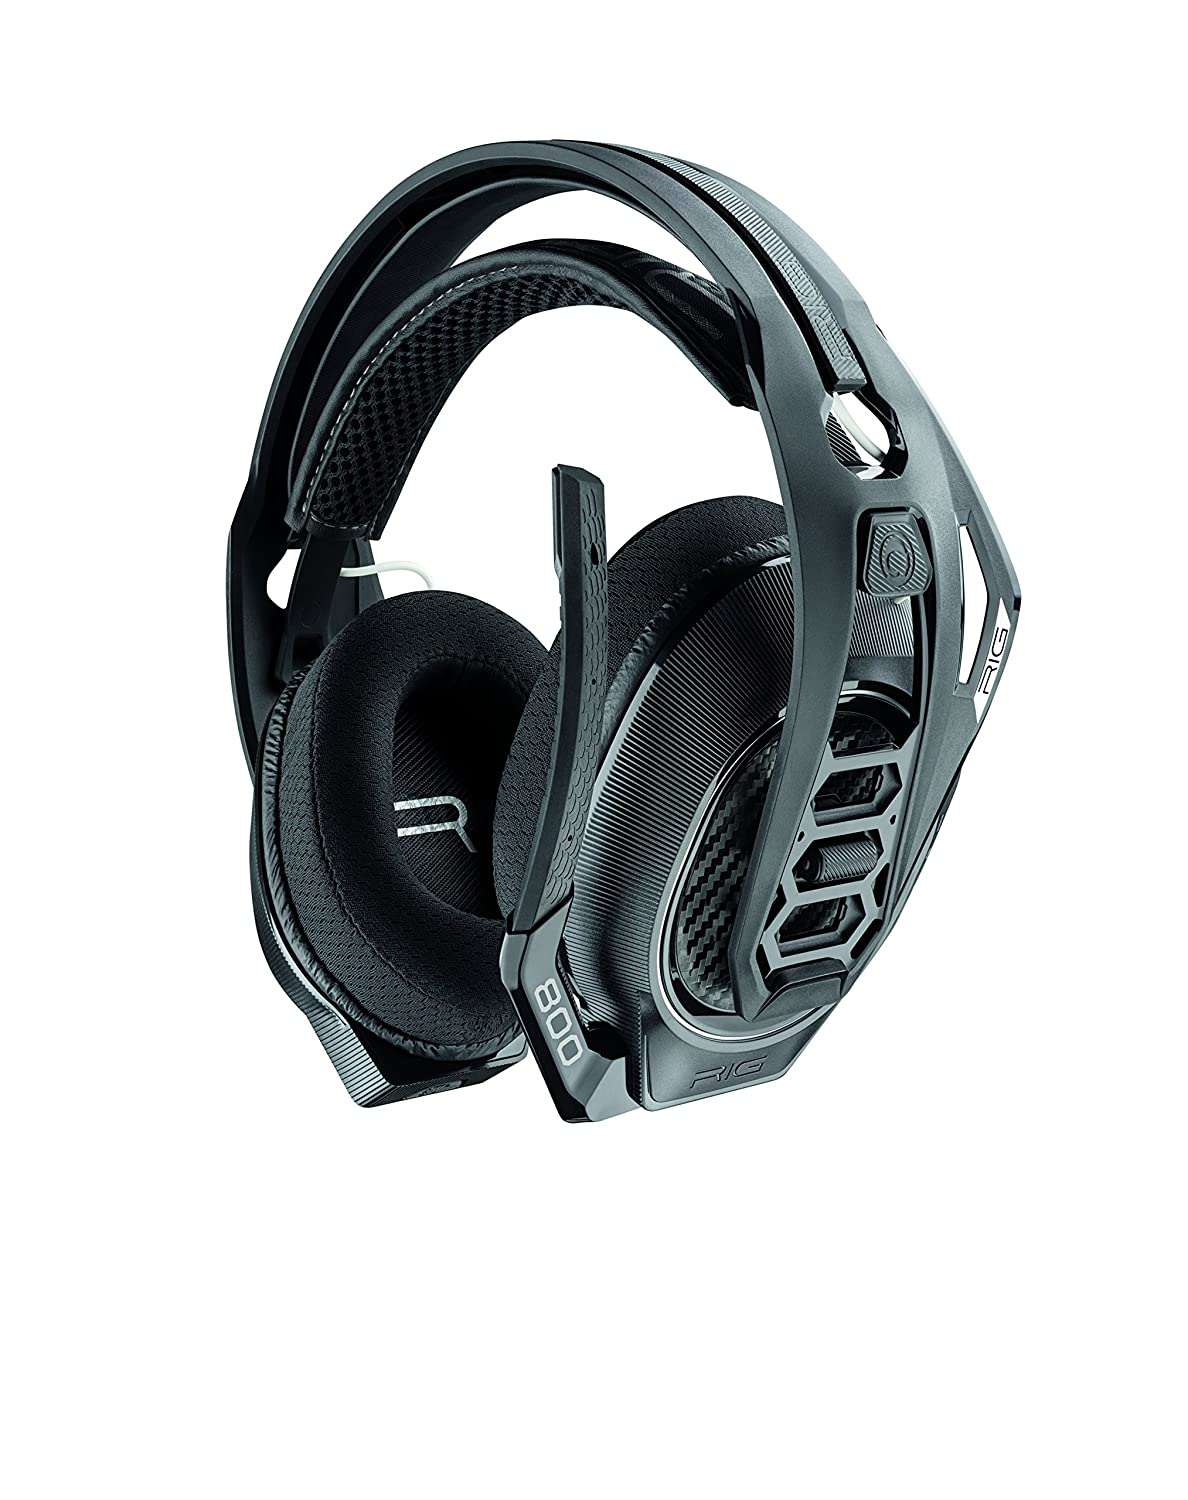 RIG 800LX Wireless Gaming Headset (Xbox One): Amazon co uk